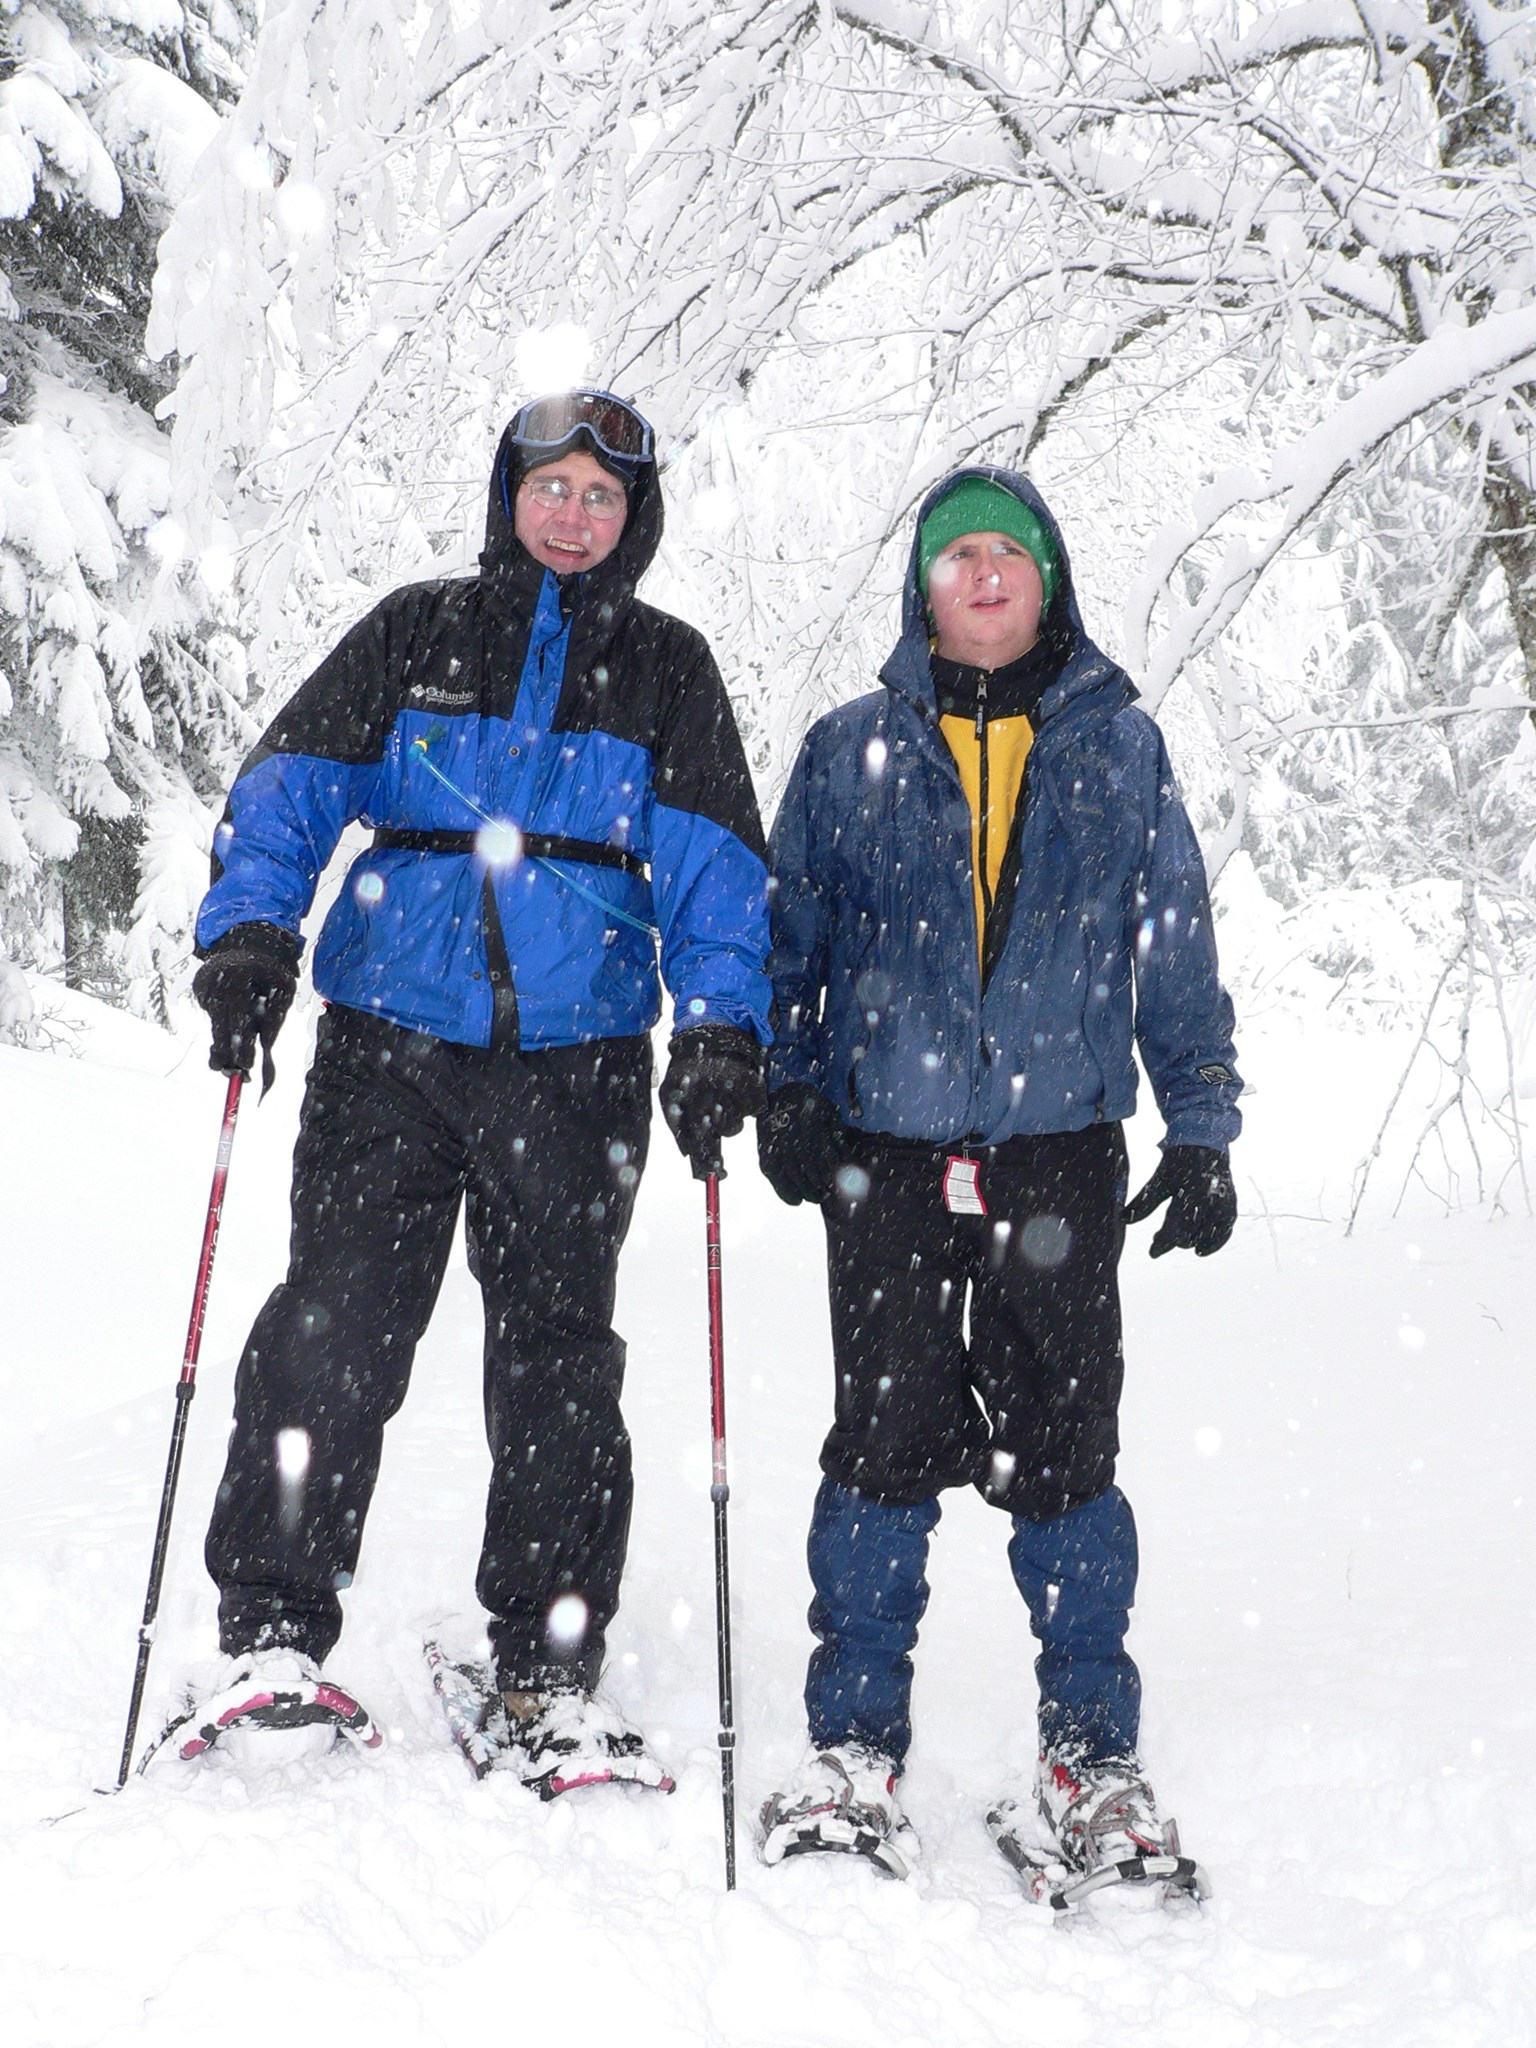 The Snow Shoe Duo